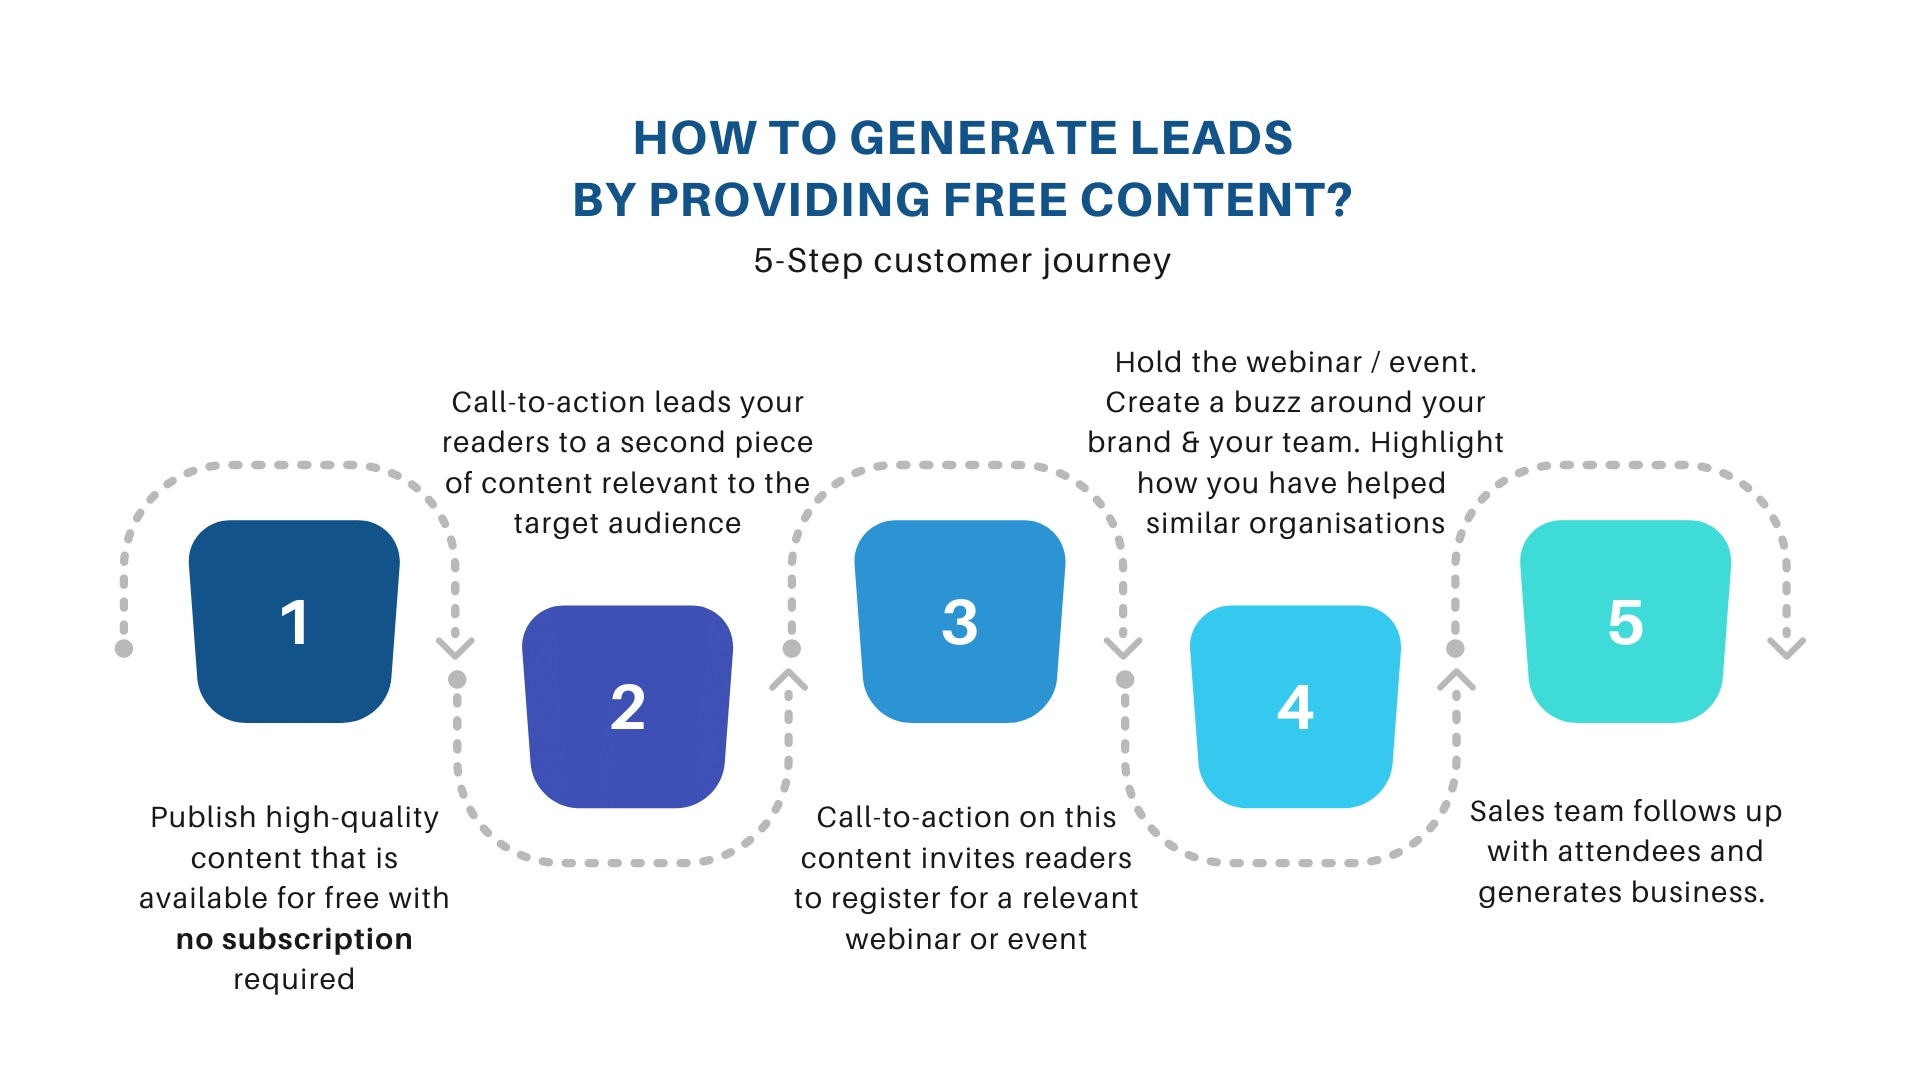 How to generate leads by providing free content